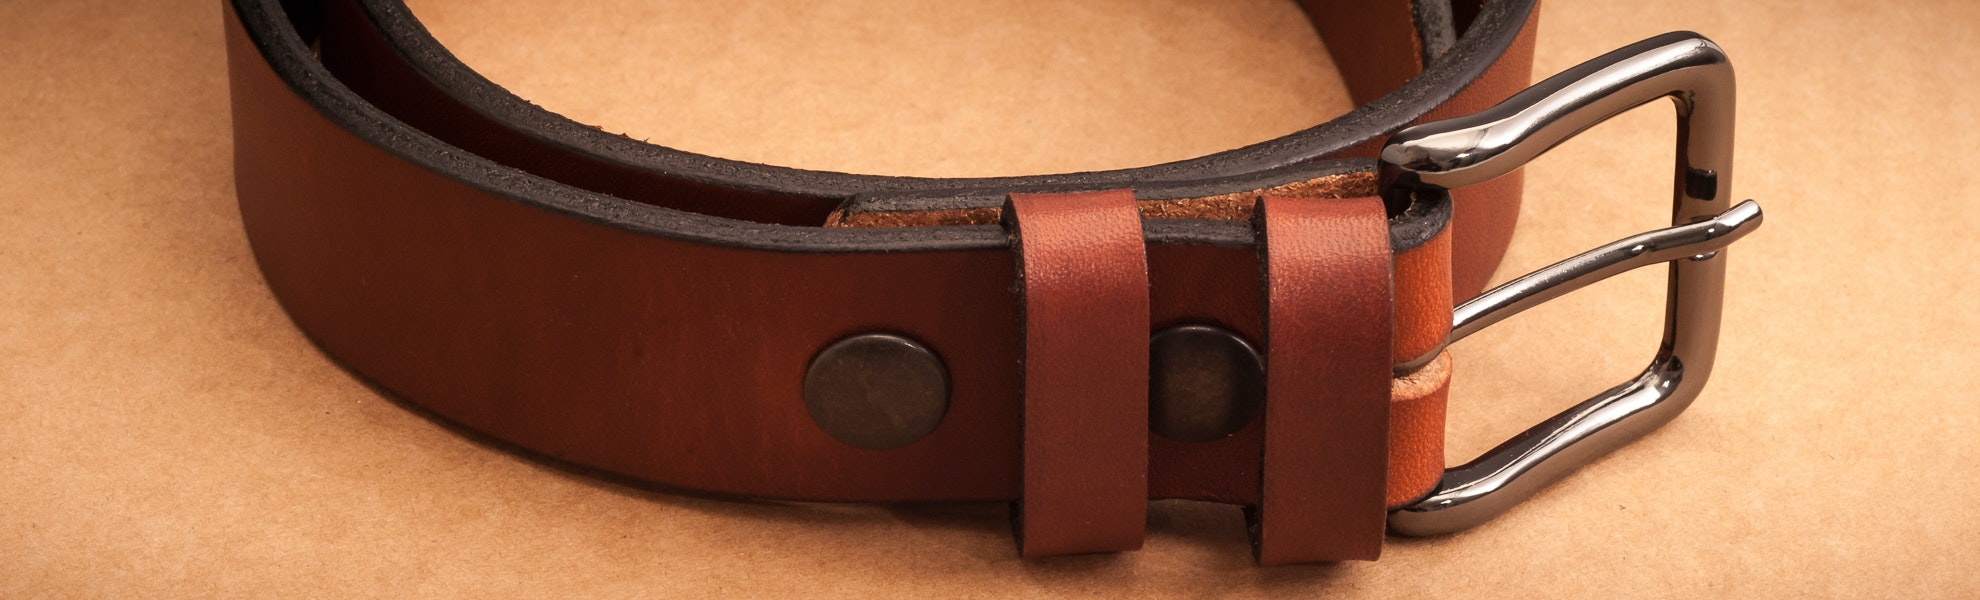 Orion Tan 35mm Latigo Belt